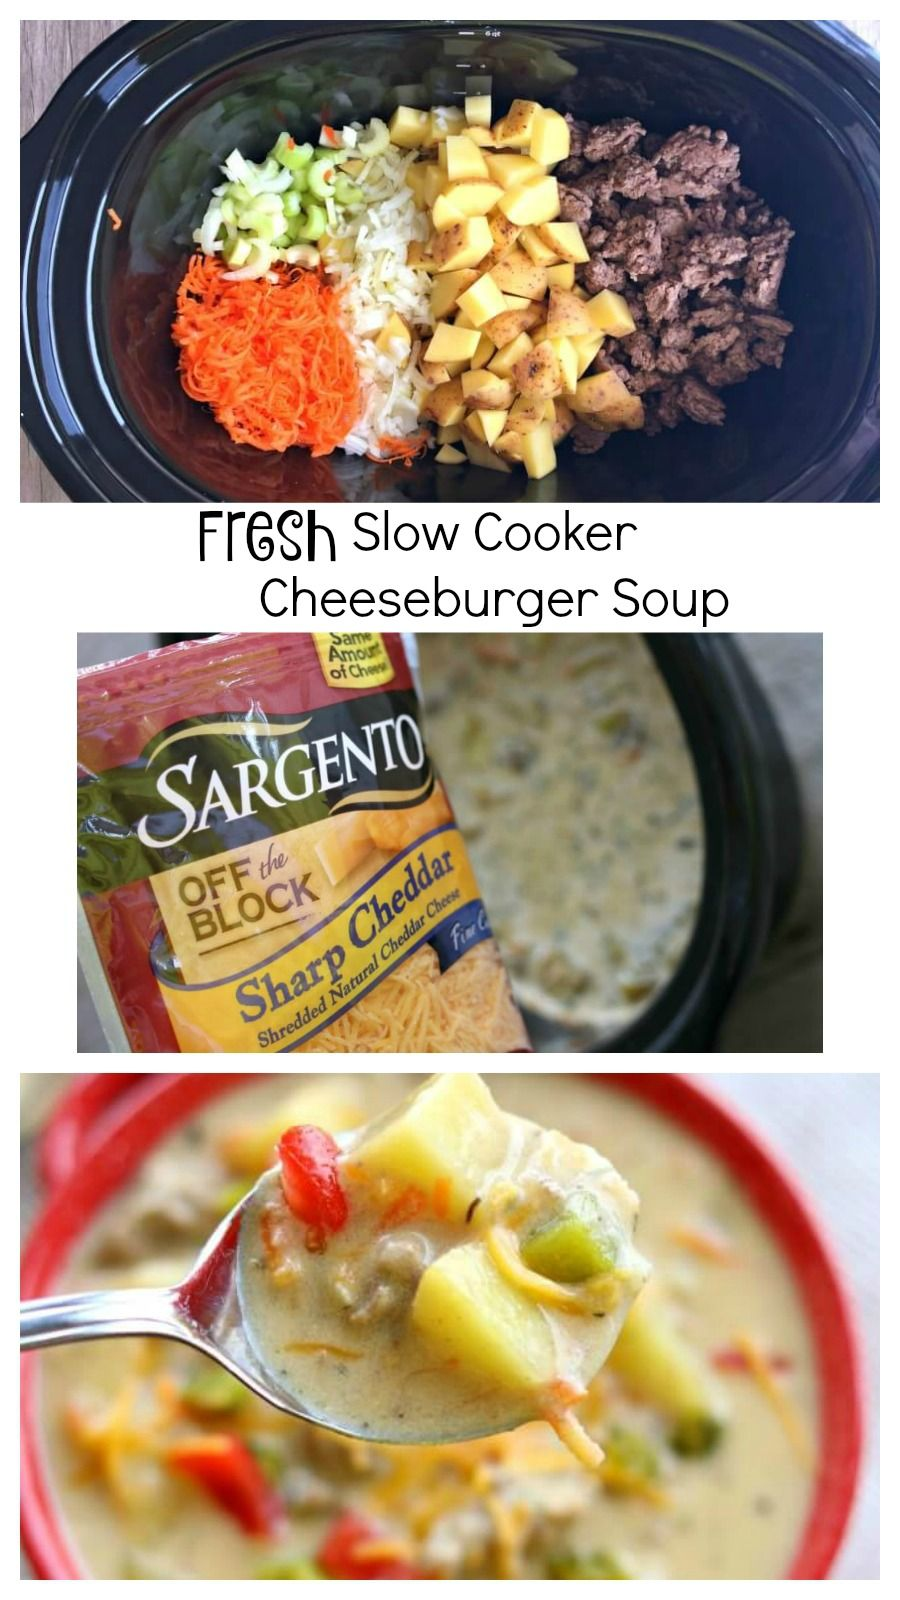 #ad This slow cooker recipe for cheeseburger soup is super simple and it contains cheese fresh off the block (no processed cheese!) Make it for dinner tonight with @SargentoCheese. #RealCheesePeople #IC